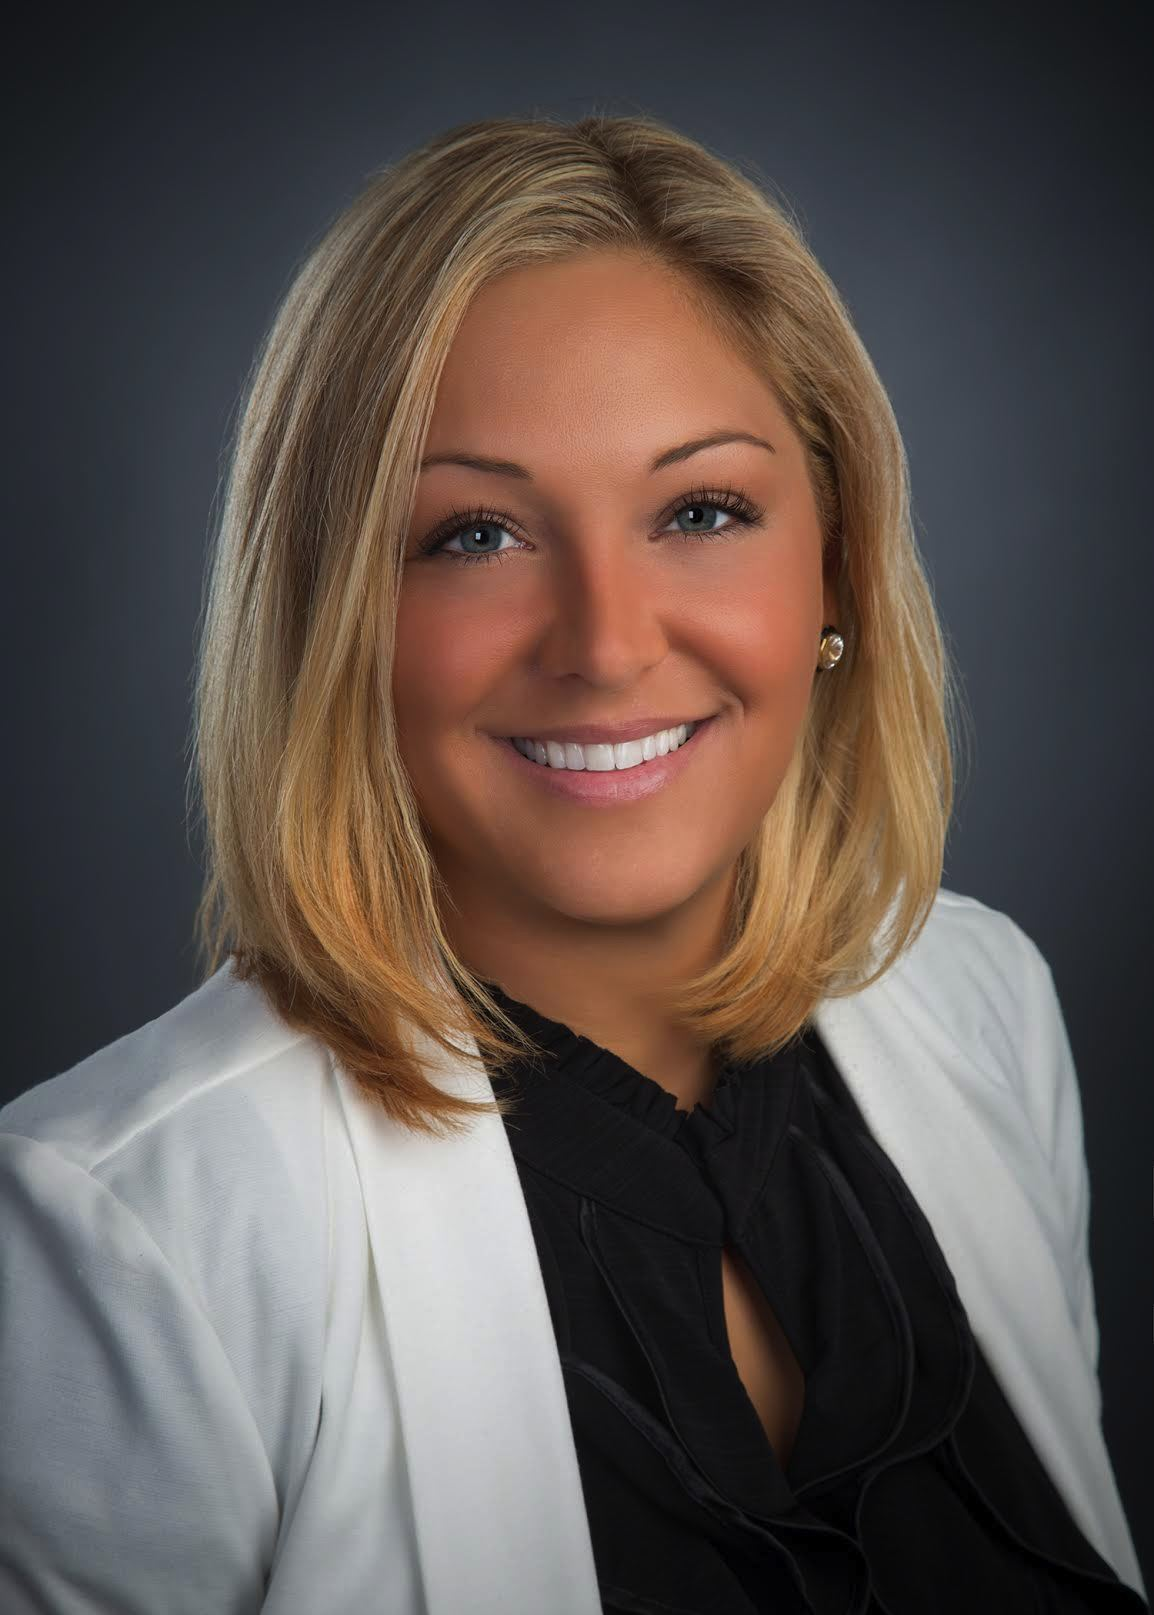 Alesha Rodriguez | Health and Life Insurance Agent | Venice, FL 34293